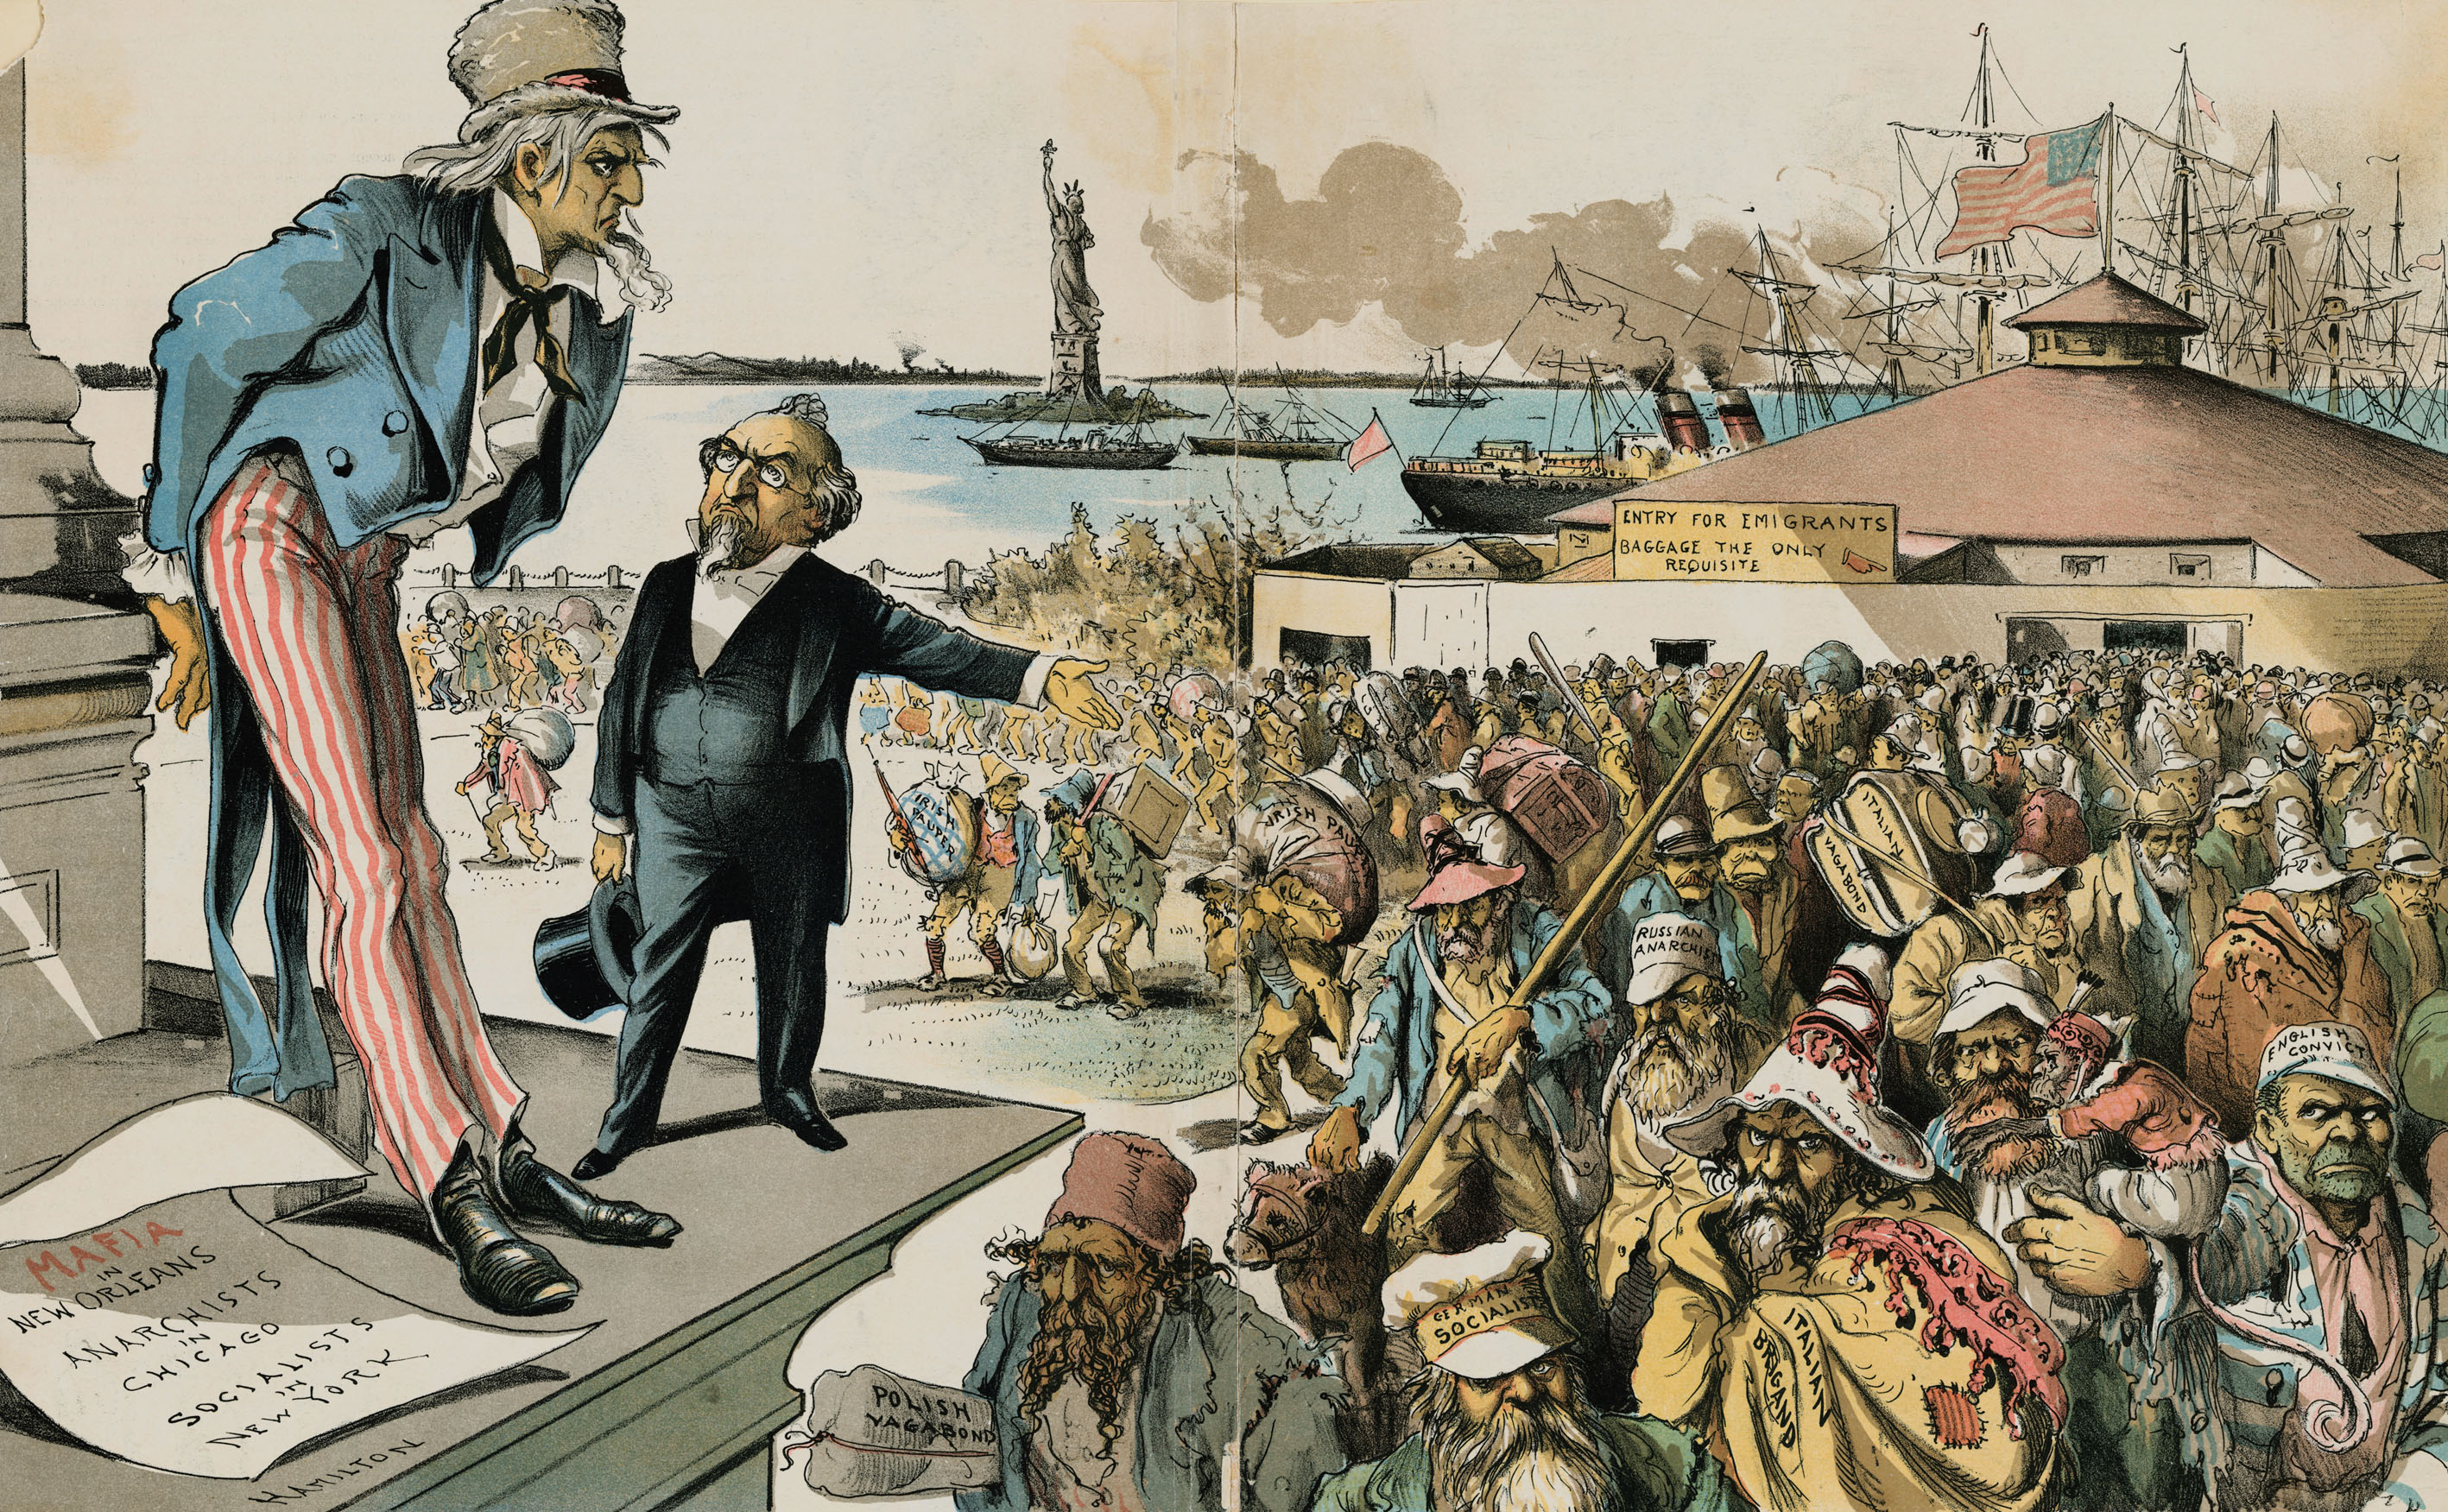 the sensitive topic of immigration in america the land of immigrants